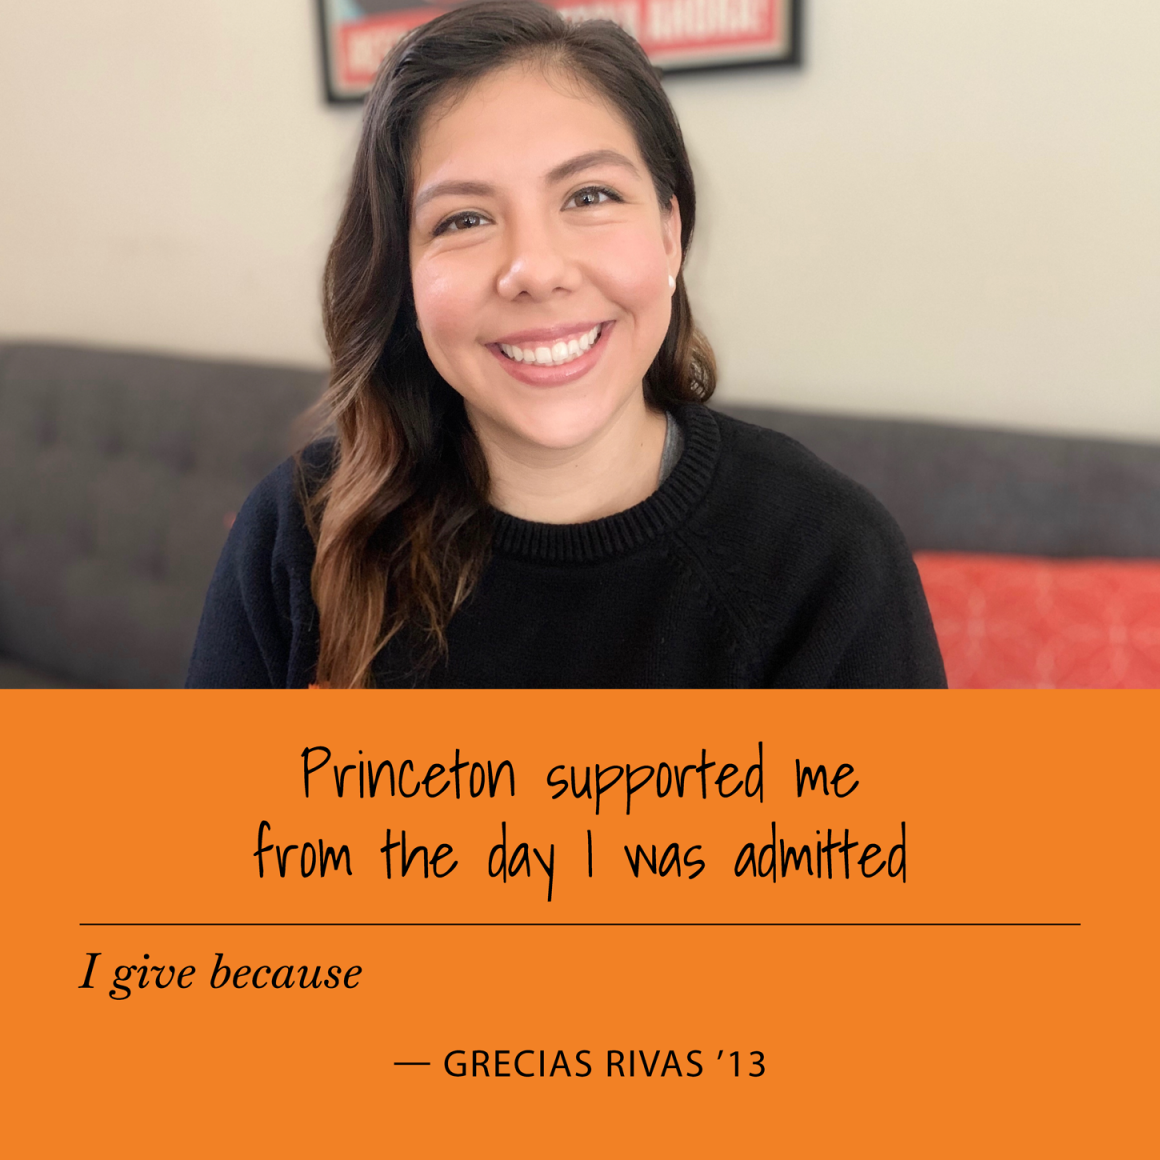 """I give because Princeton supported me from the day I was admitted."" Grecias Rivas '13"